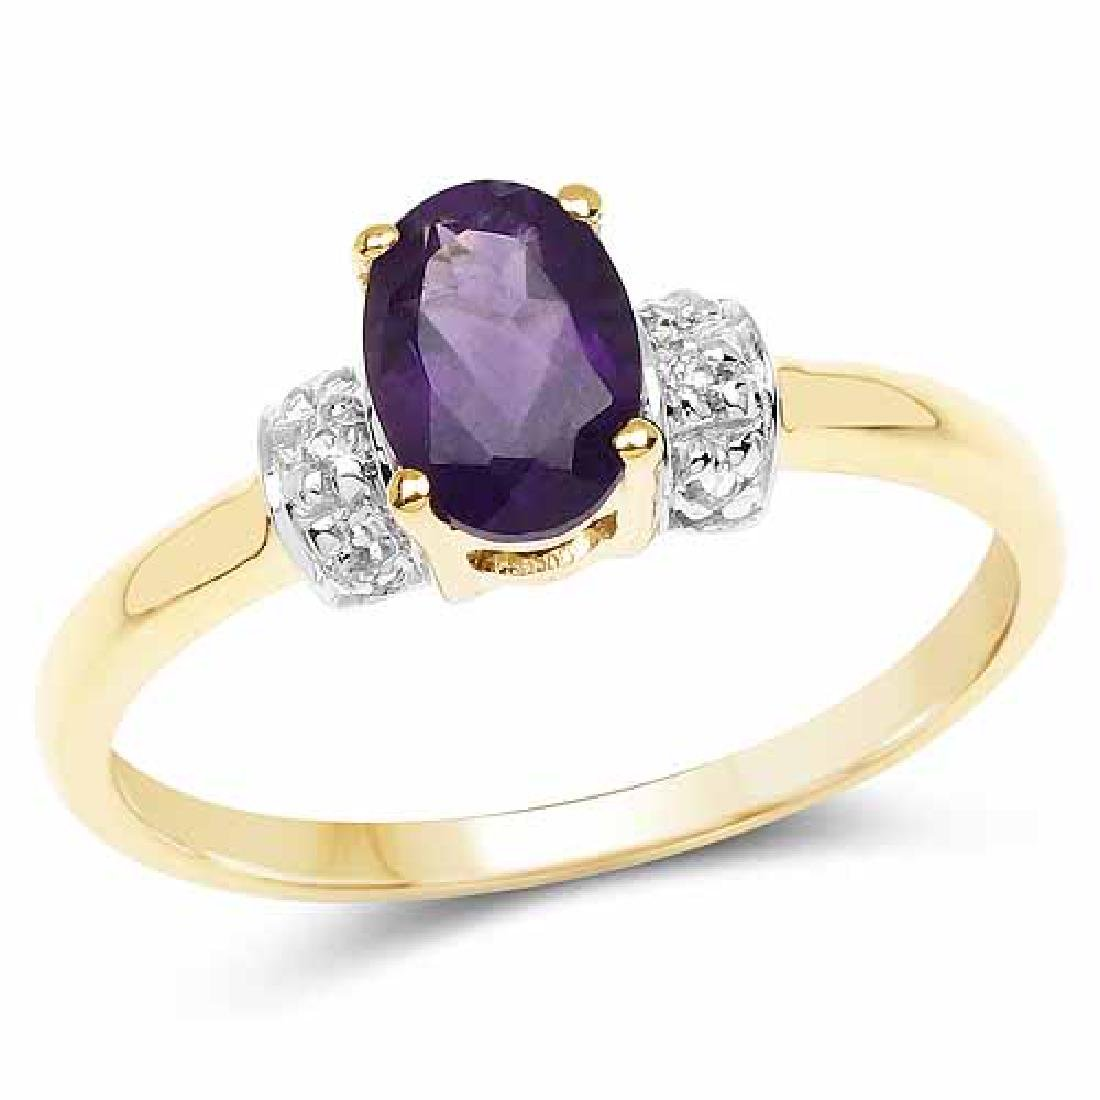 14K Yellow Gold Plated 0.85 Carat Genuine Amethyst and